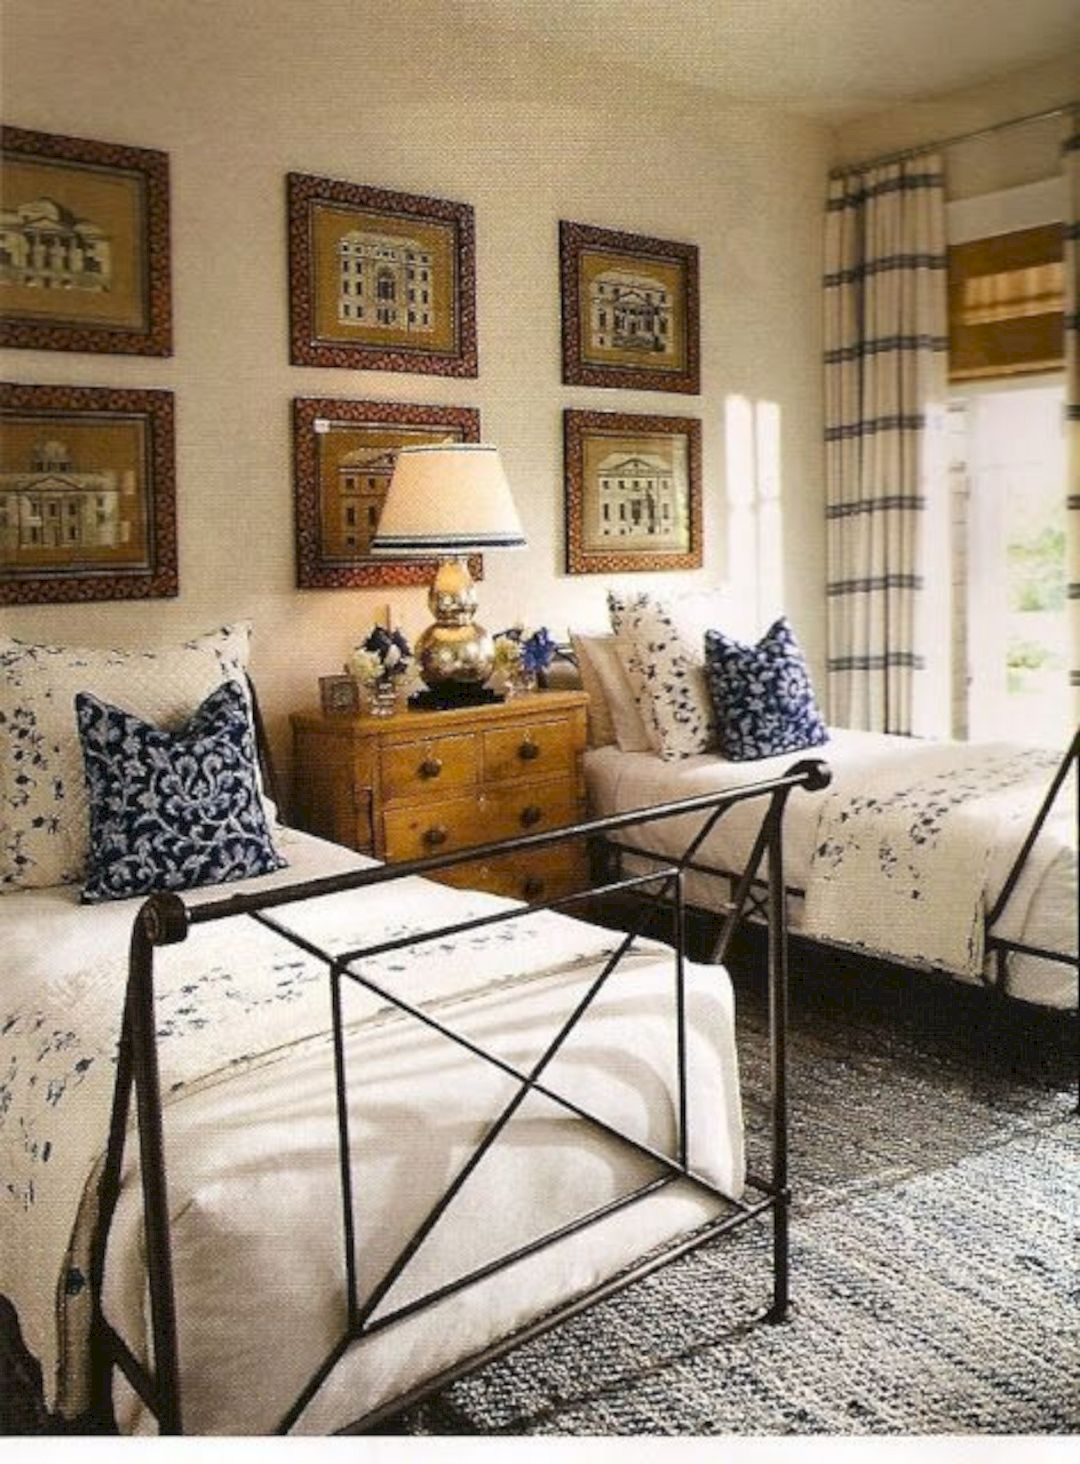 17 French Country Room Decoration Ideas https://www ... on shabby chic bedroom ideas, pinterest french country kitchen decor, farmhouse kitchen decorating ideas,